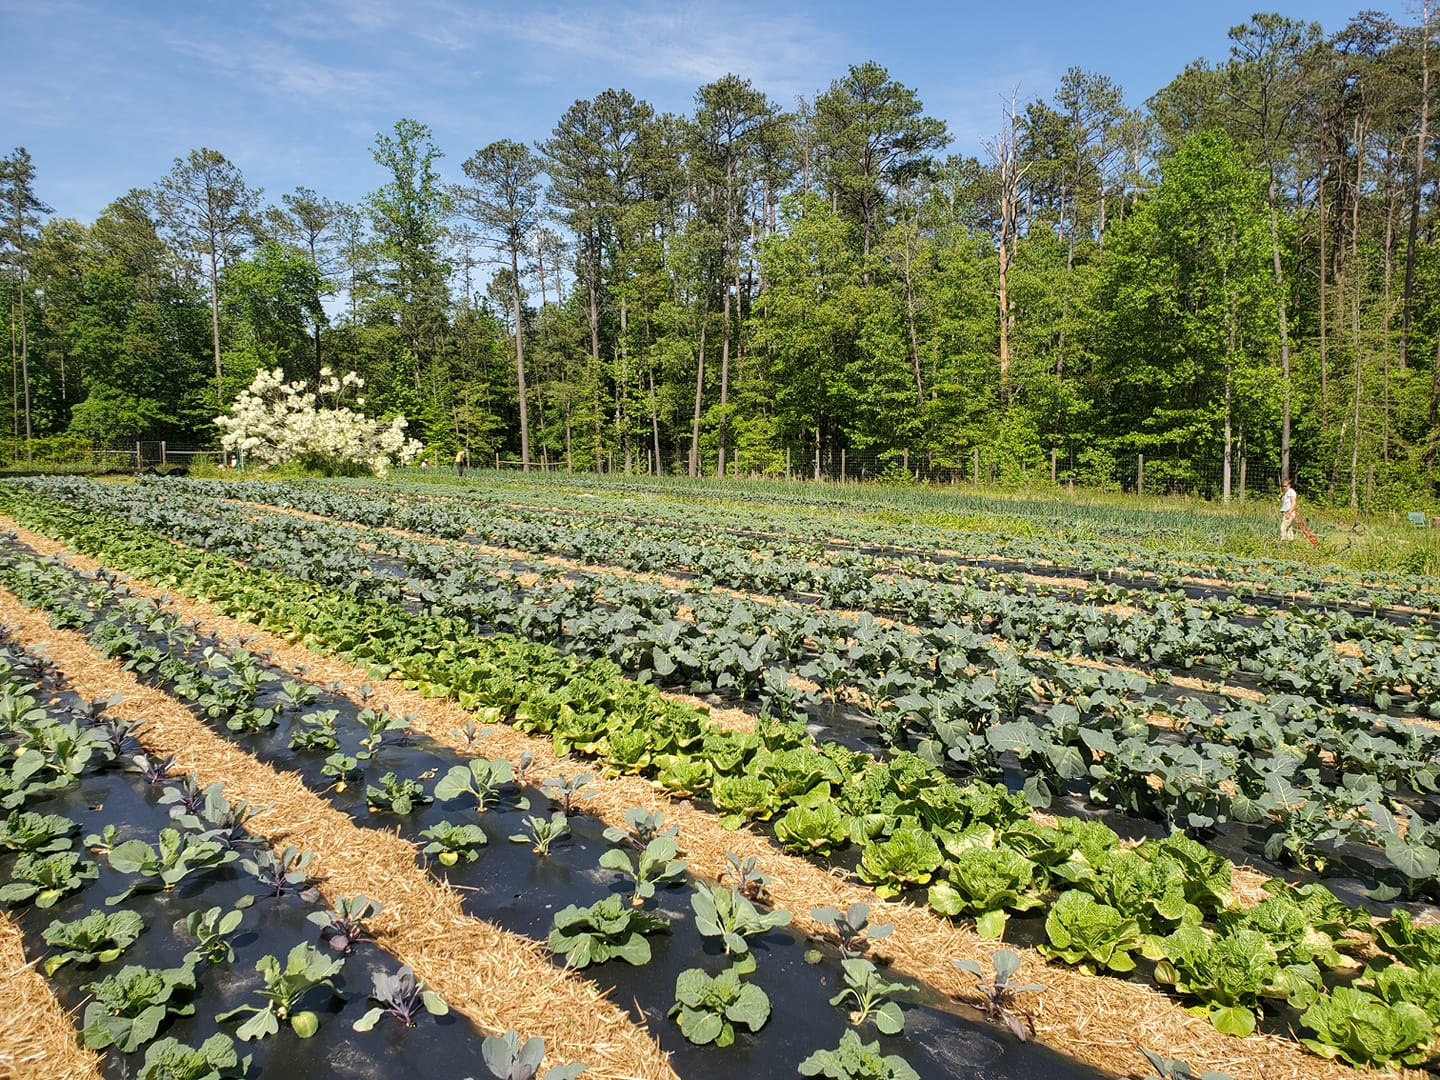 Farm Happenings for May 12, 2021